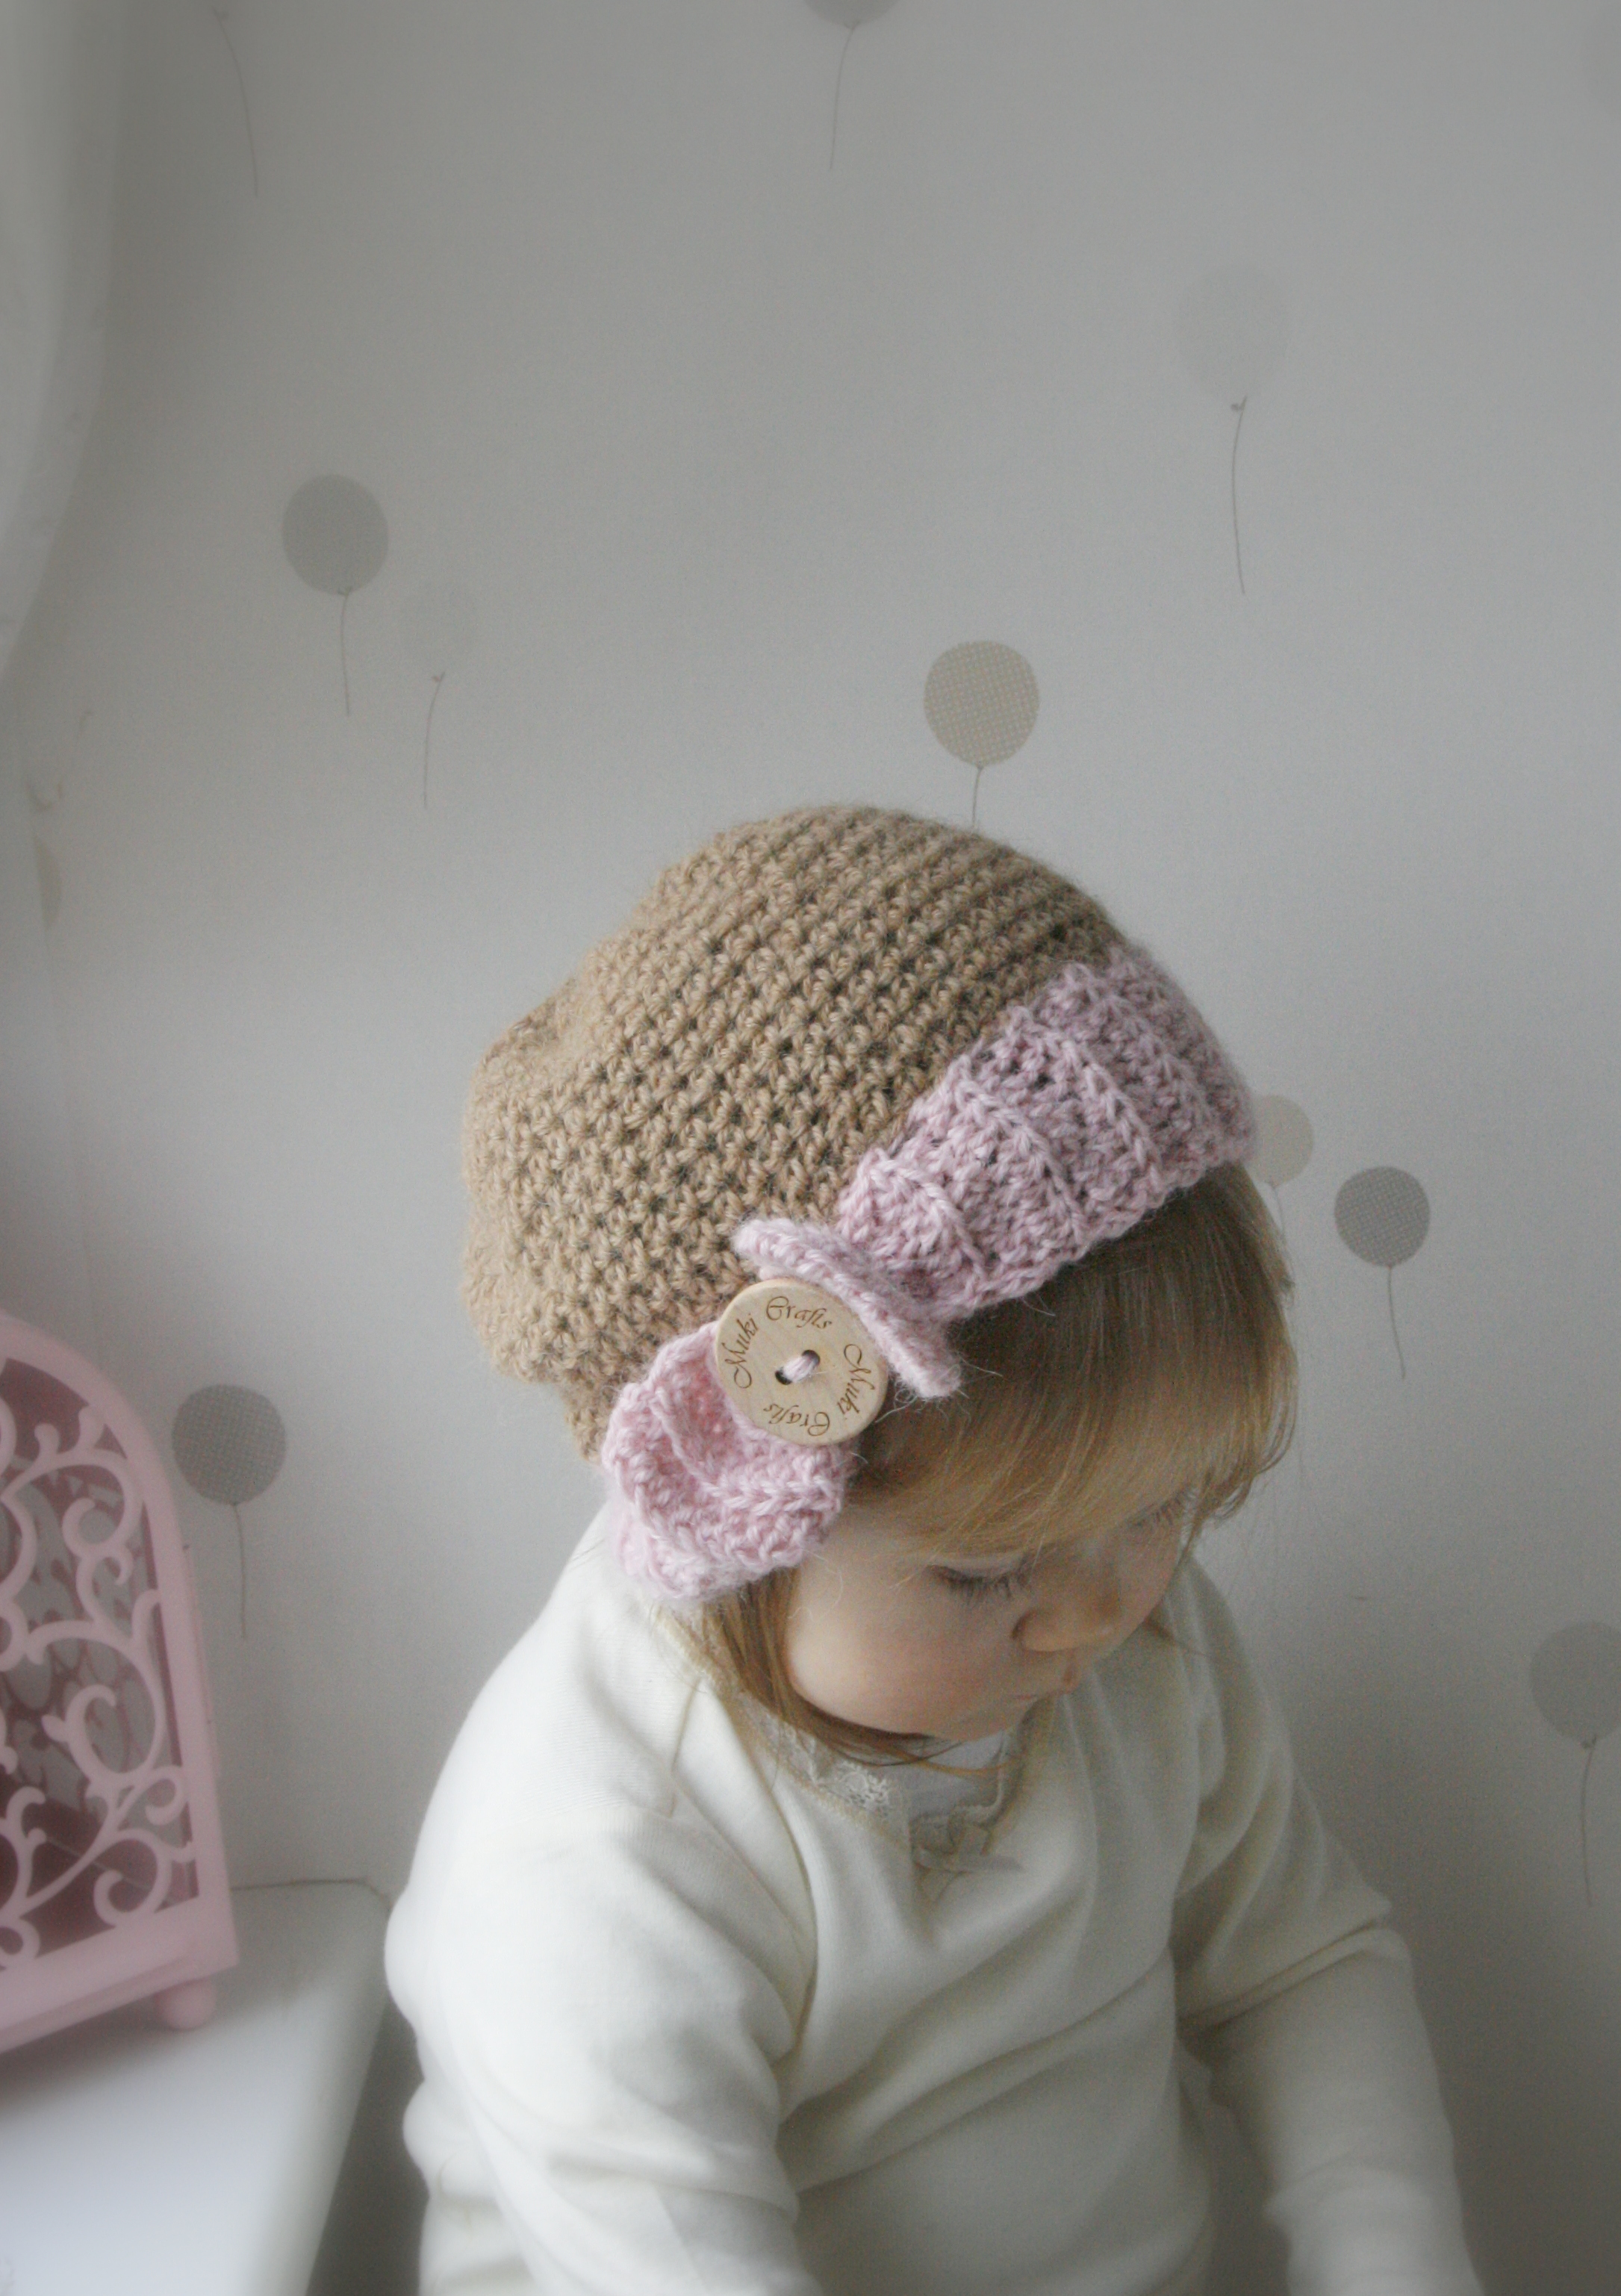 Crochet Baby Hat Pattern With Bow : CROCHET PATTERN Bow Hat Pippa Newborn, Baby, Todddler ...